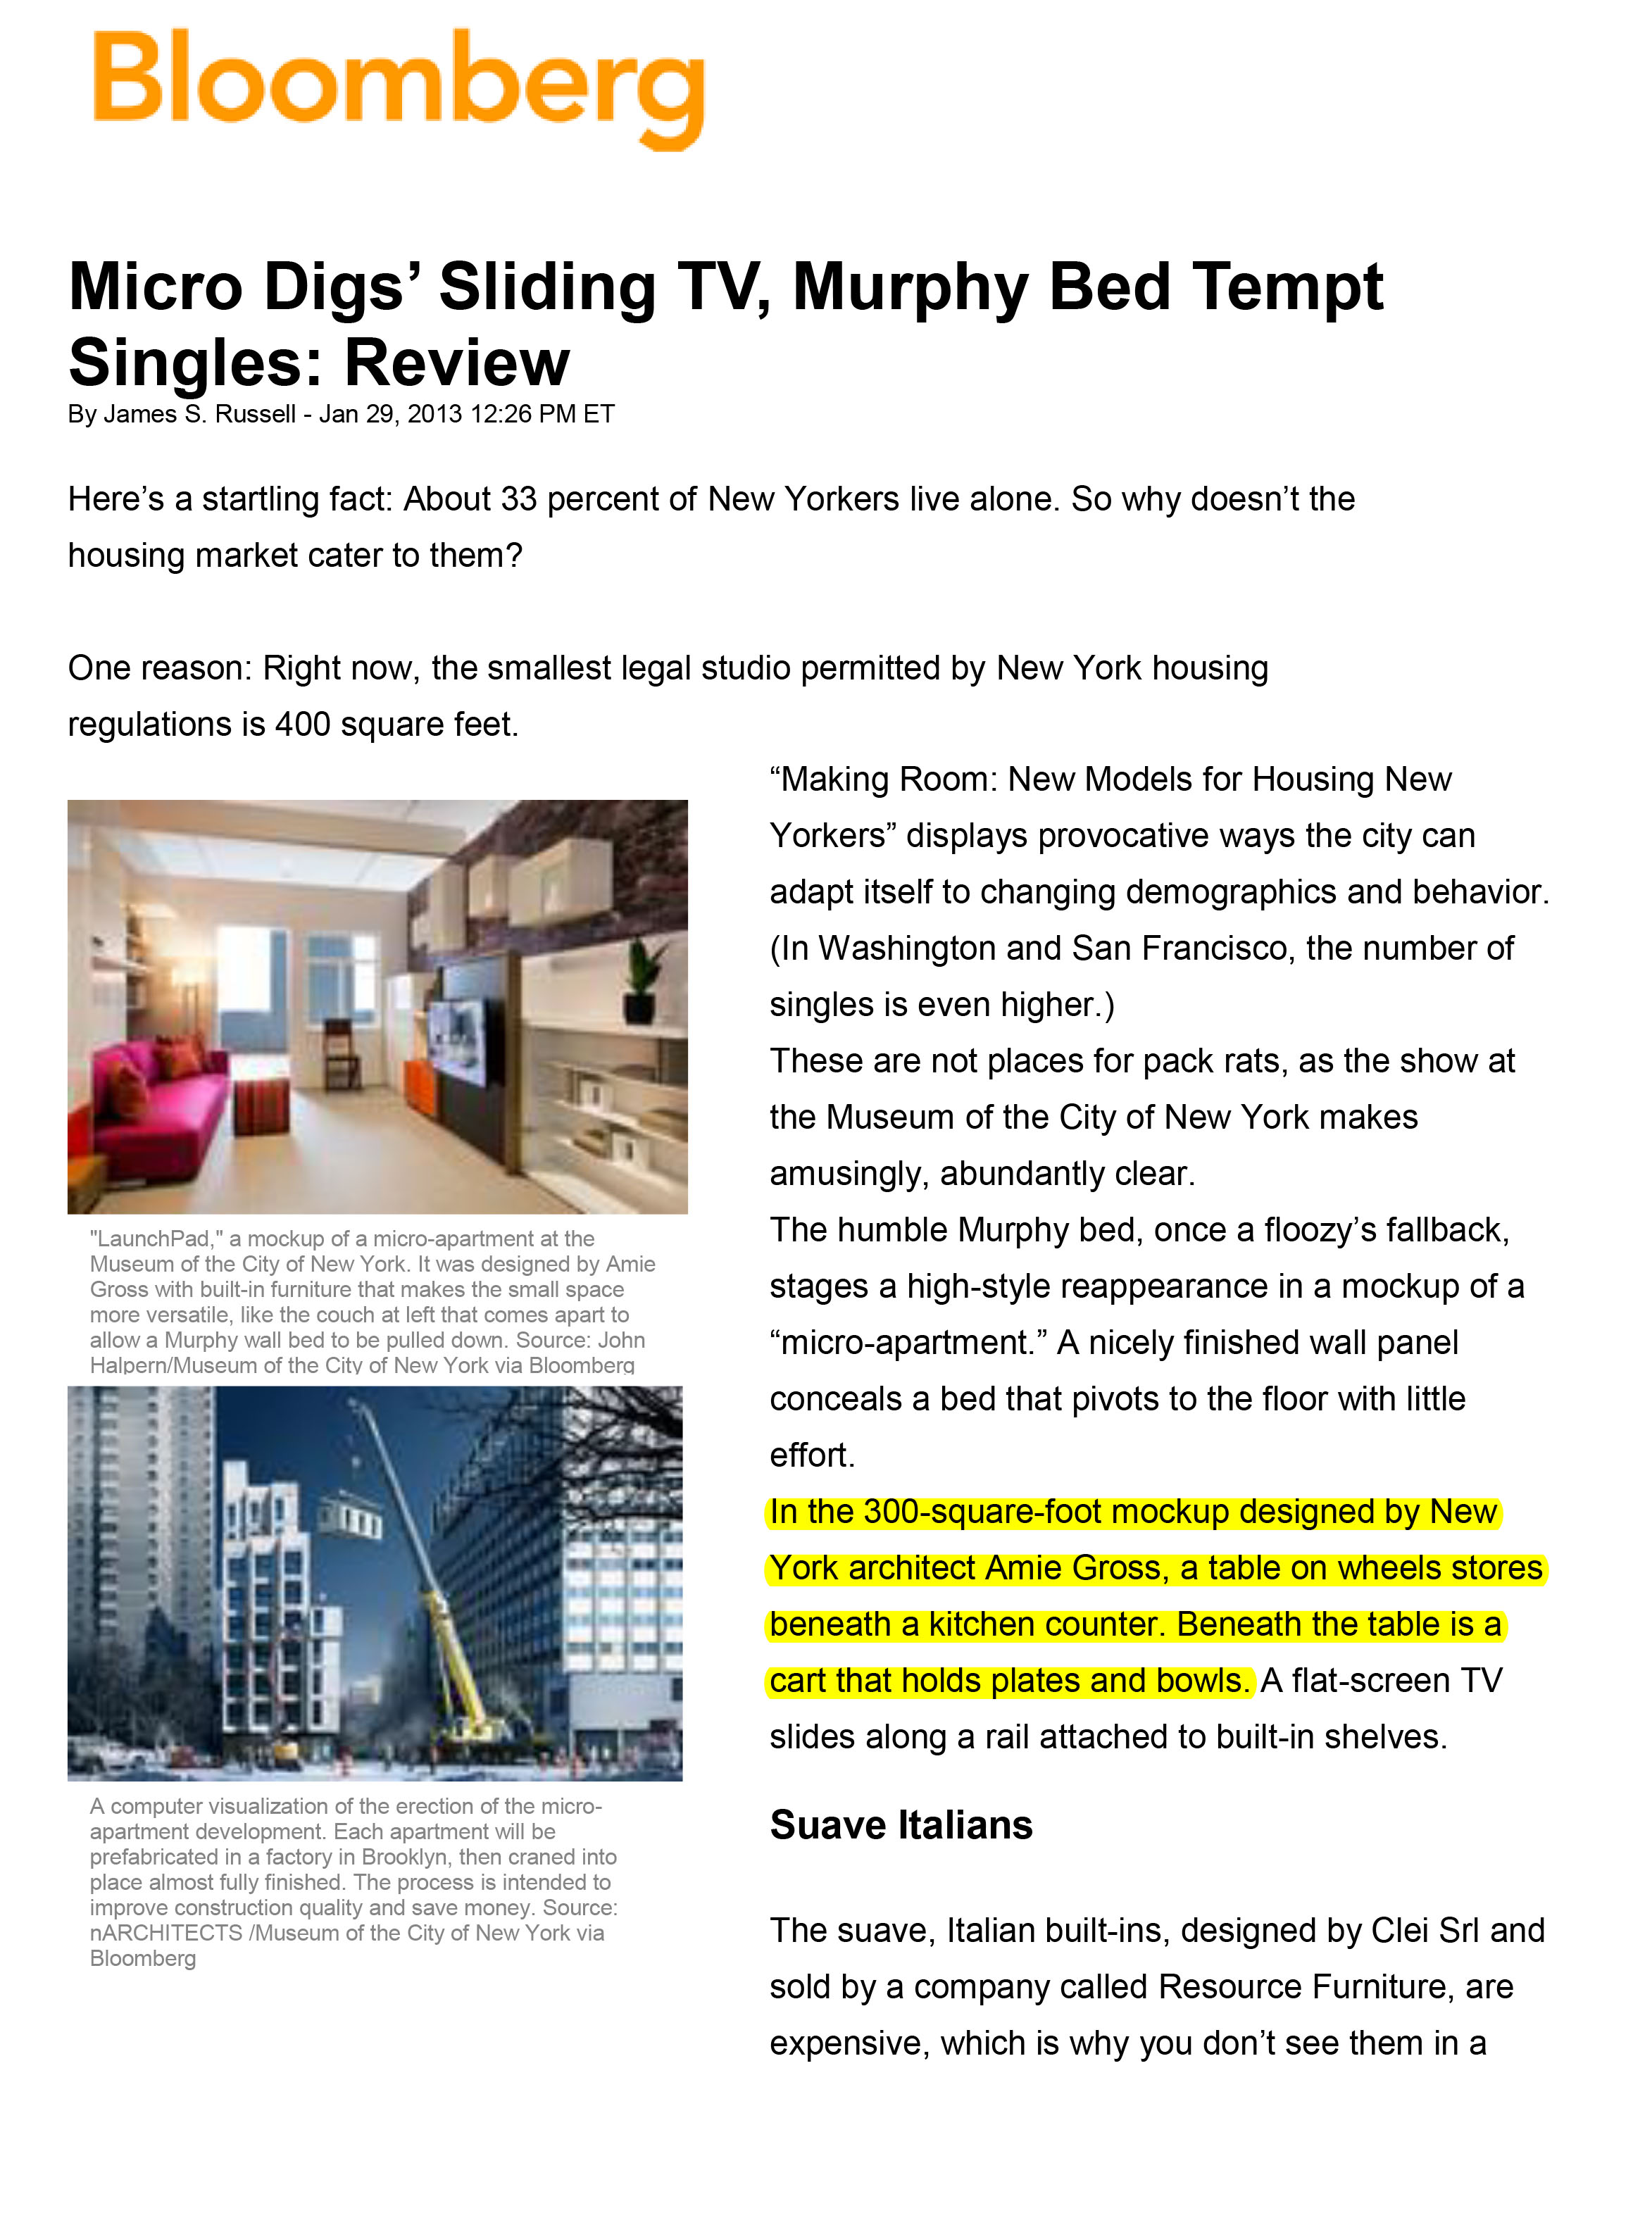 Making Room_Bloomberg_ Micros' Sliding TV, Murphy Bed Tempt Singles-1